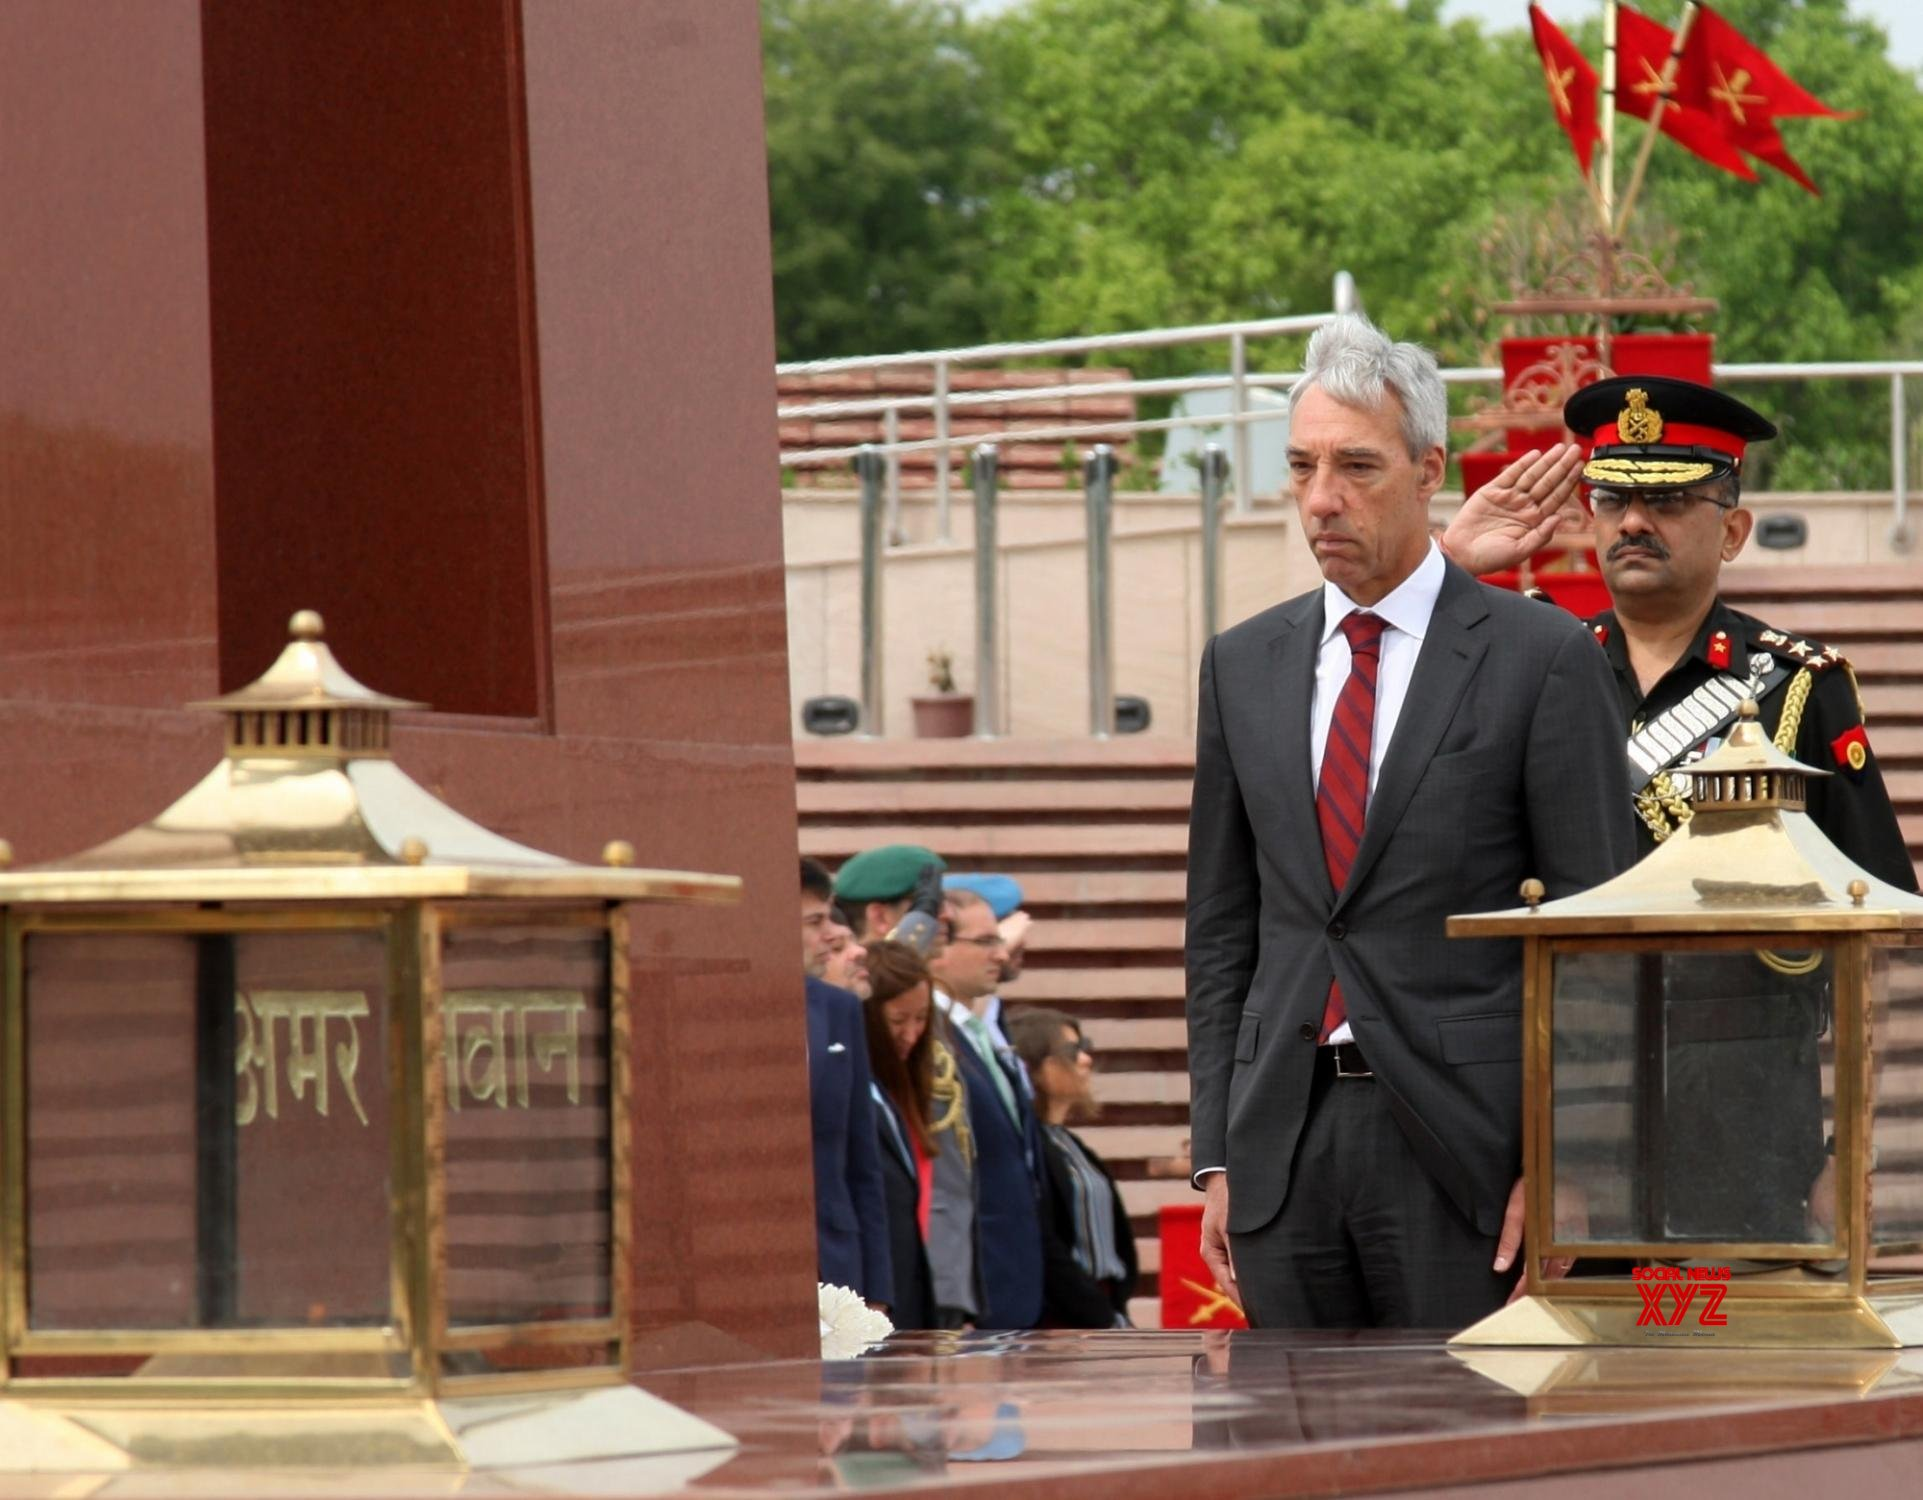 New Delhi: Portuguese Defence Minister pays homage at National War Memorial #Gallery